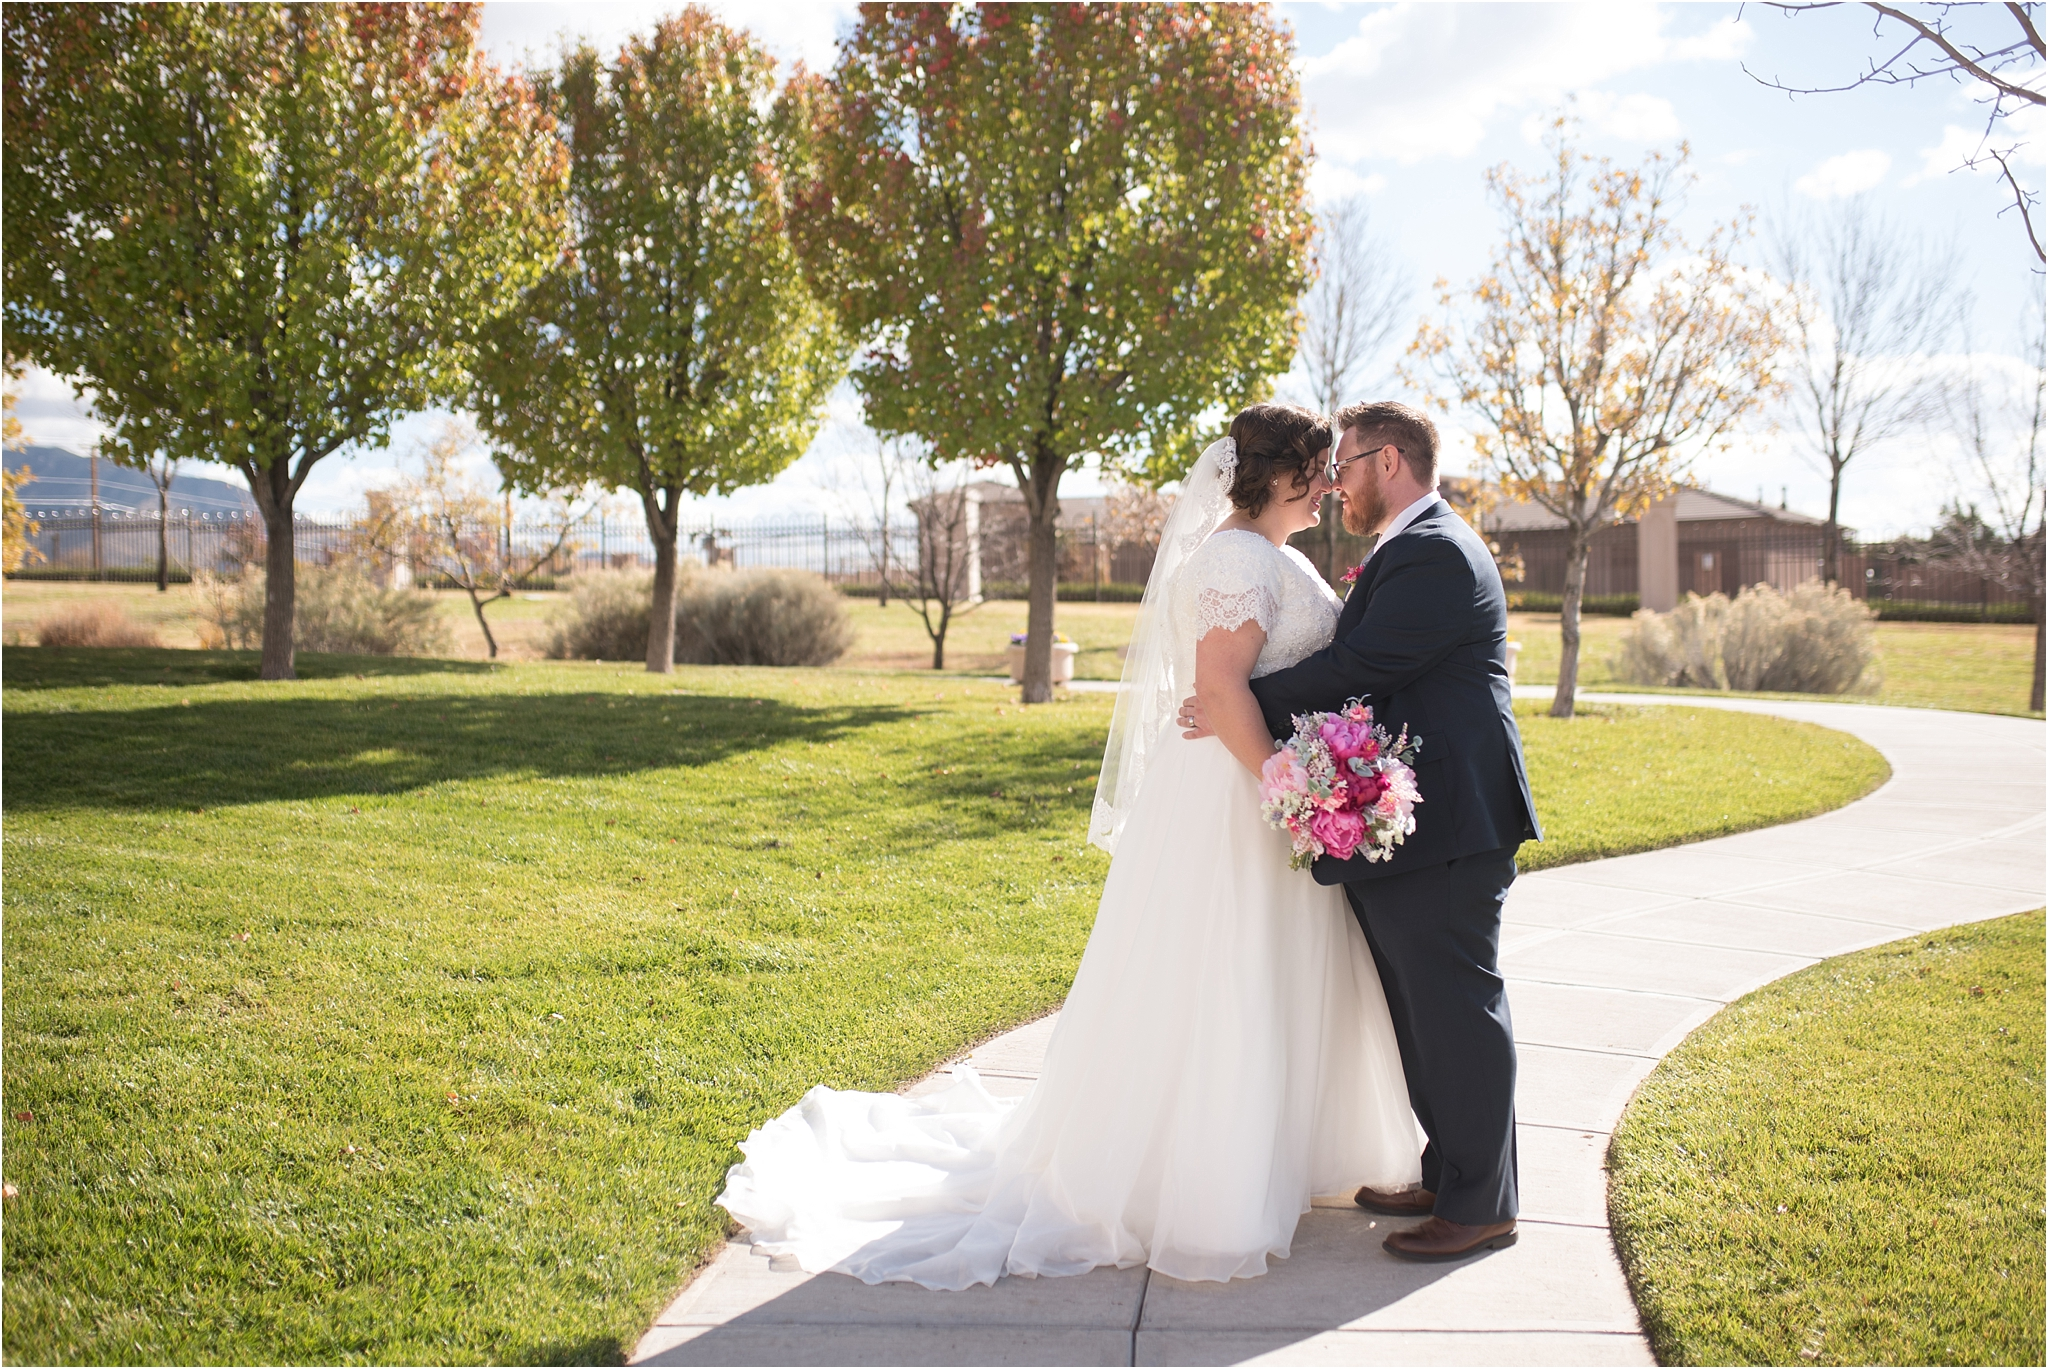 kayla kitts photography - albuquerque wedding photographer - new mexico wedding photographer - desination wedding photographer - cabo wedding photographer_0043.jpg